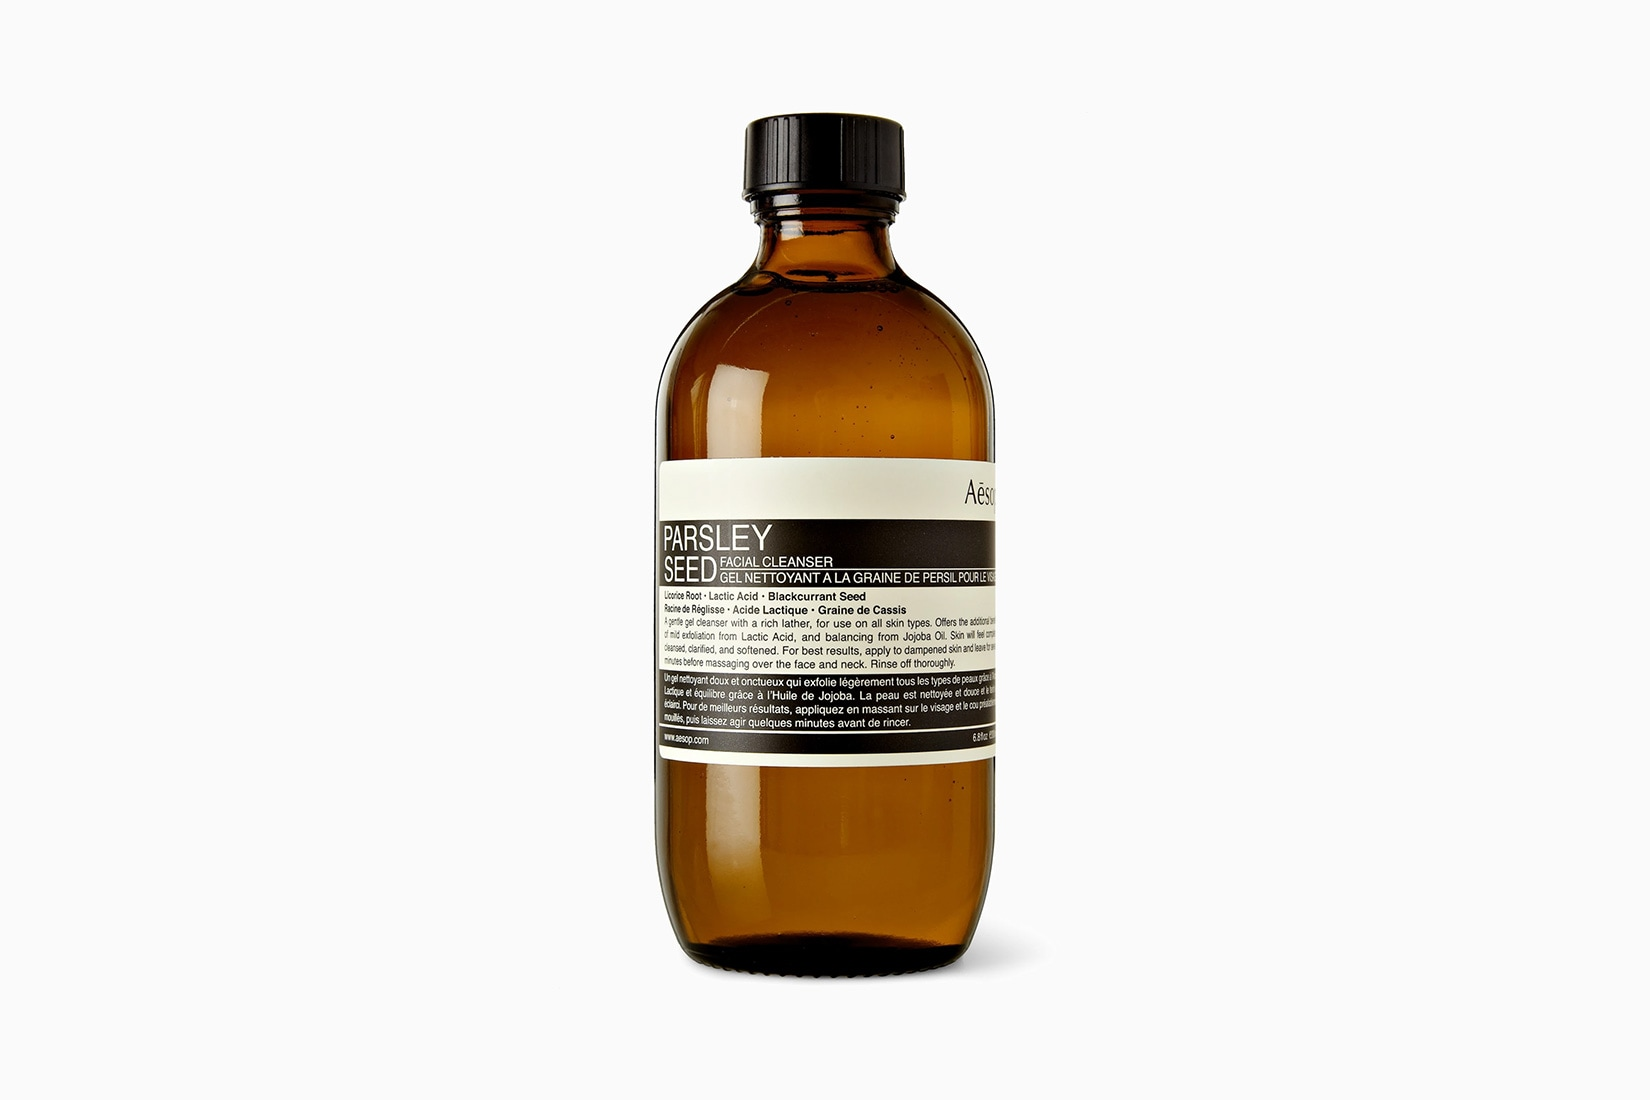 best natural organic beauty skincare aesop parsley seed facial cleanser - Luxe Digital